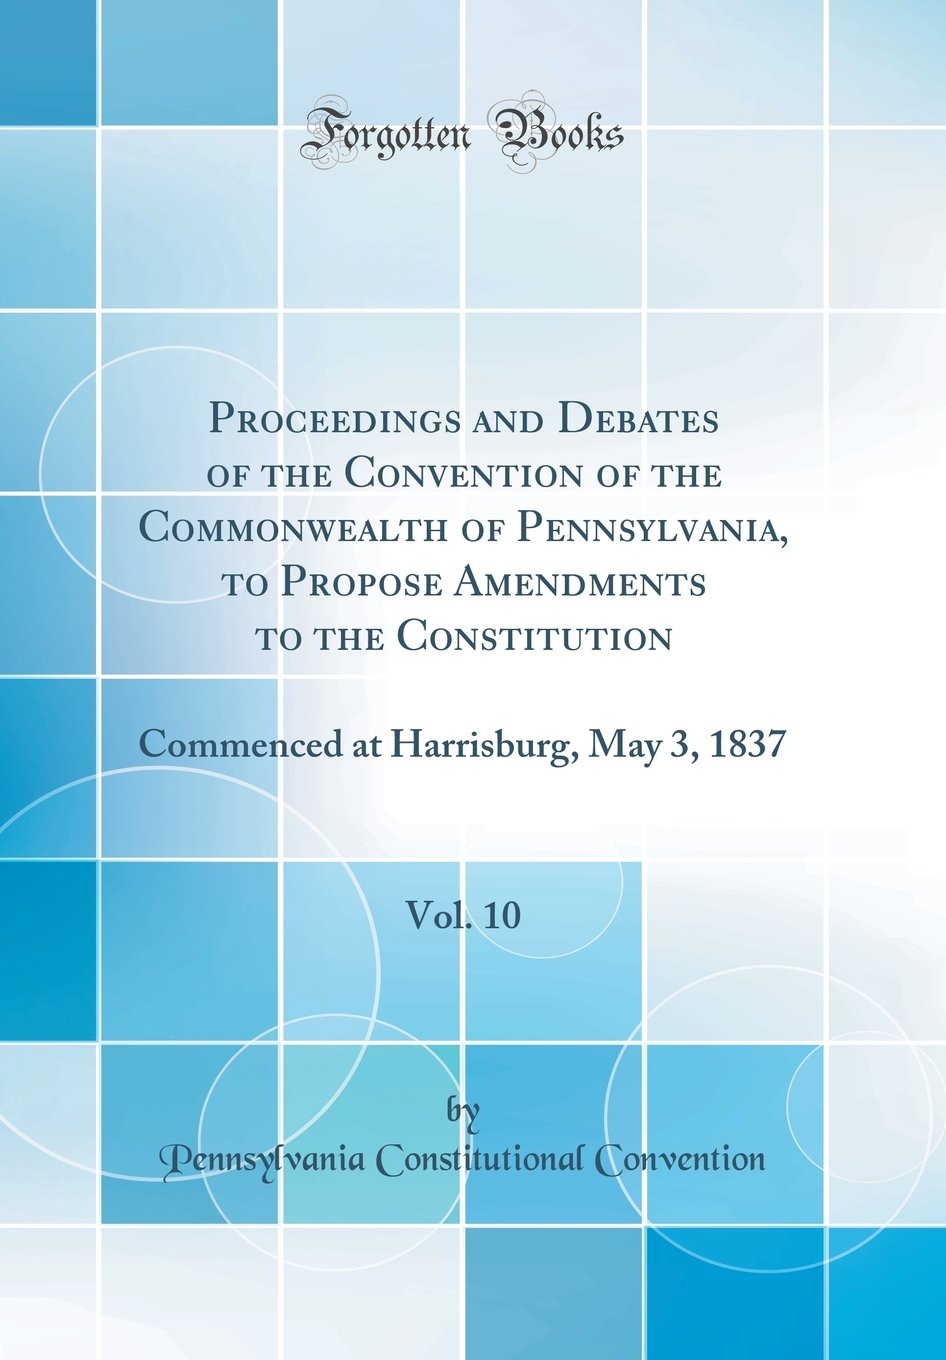 Proceedings and Debates of the Convention of the Commonwealth of Pennsylvania, to Propose Amendments to the Constitution, Vol. 10: Commenced at Harrisburg, May 3, 1837 (Classic Reprint) ebook